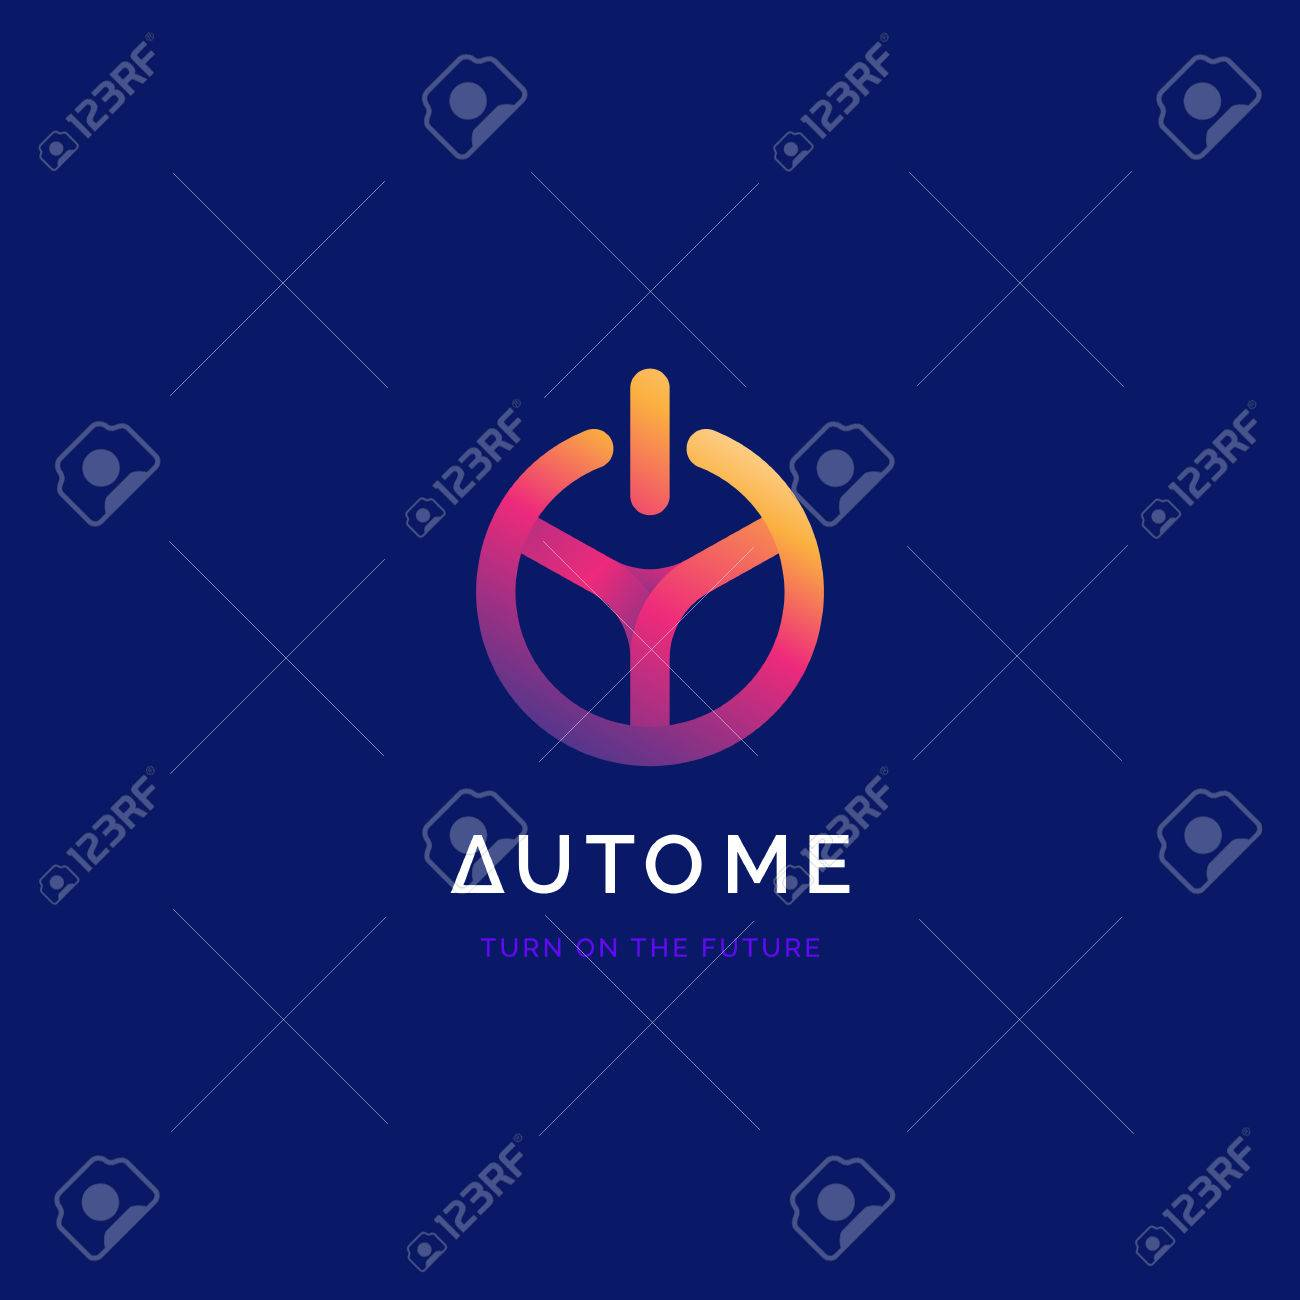 Steering Wheel With Power Button Logo Driverless Car Symbol